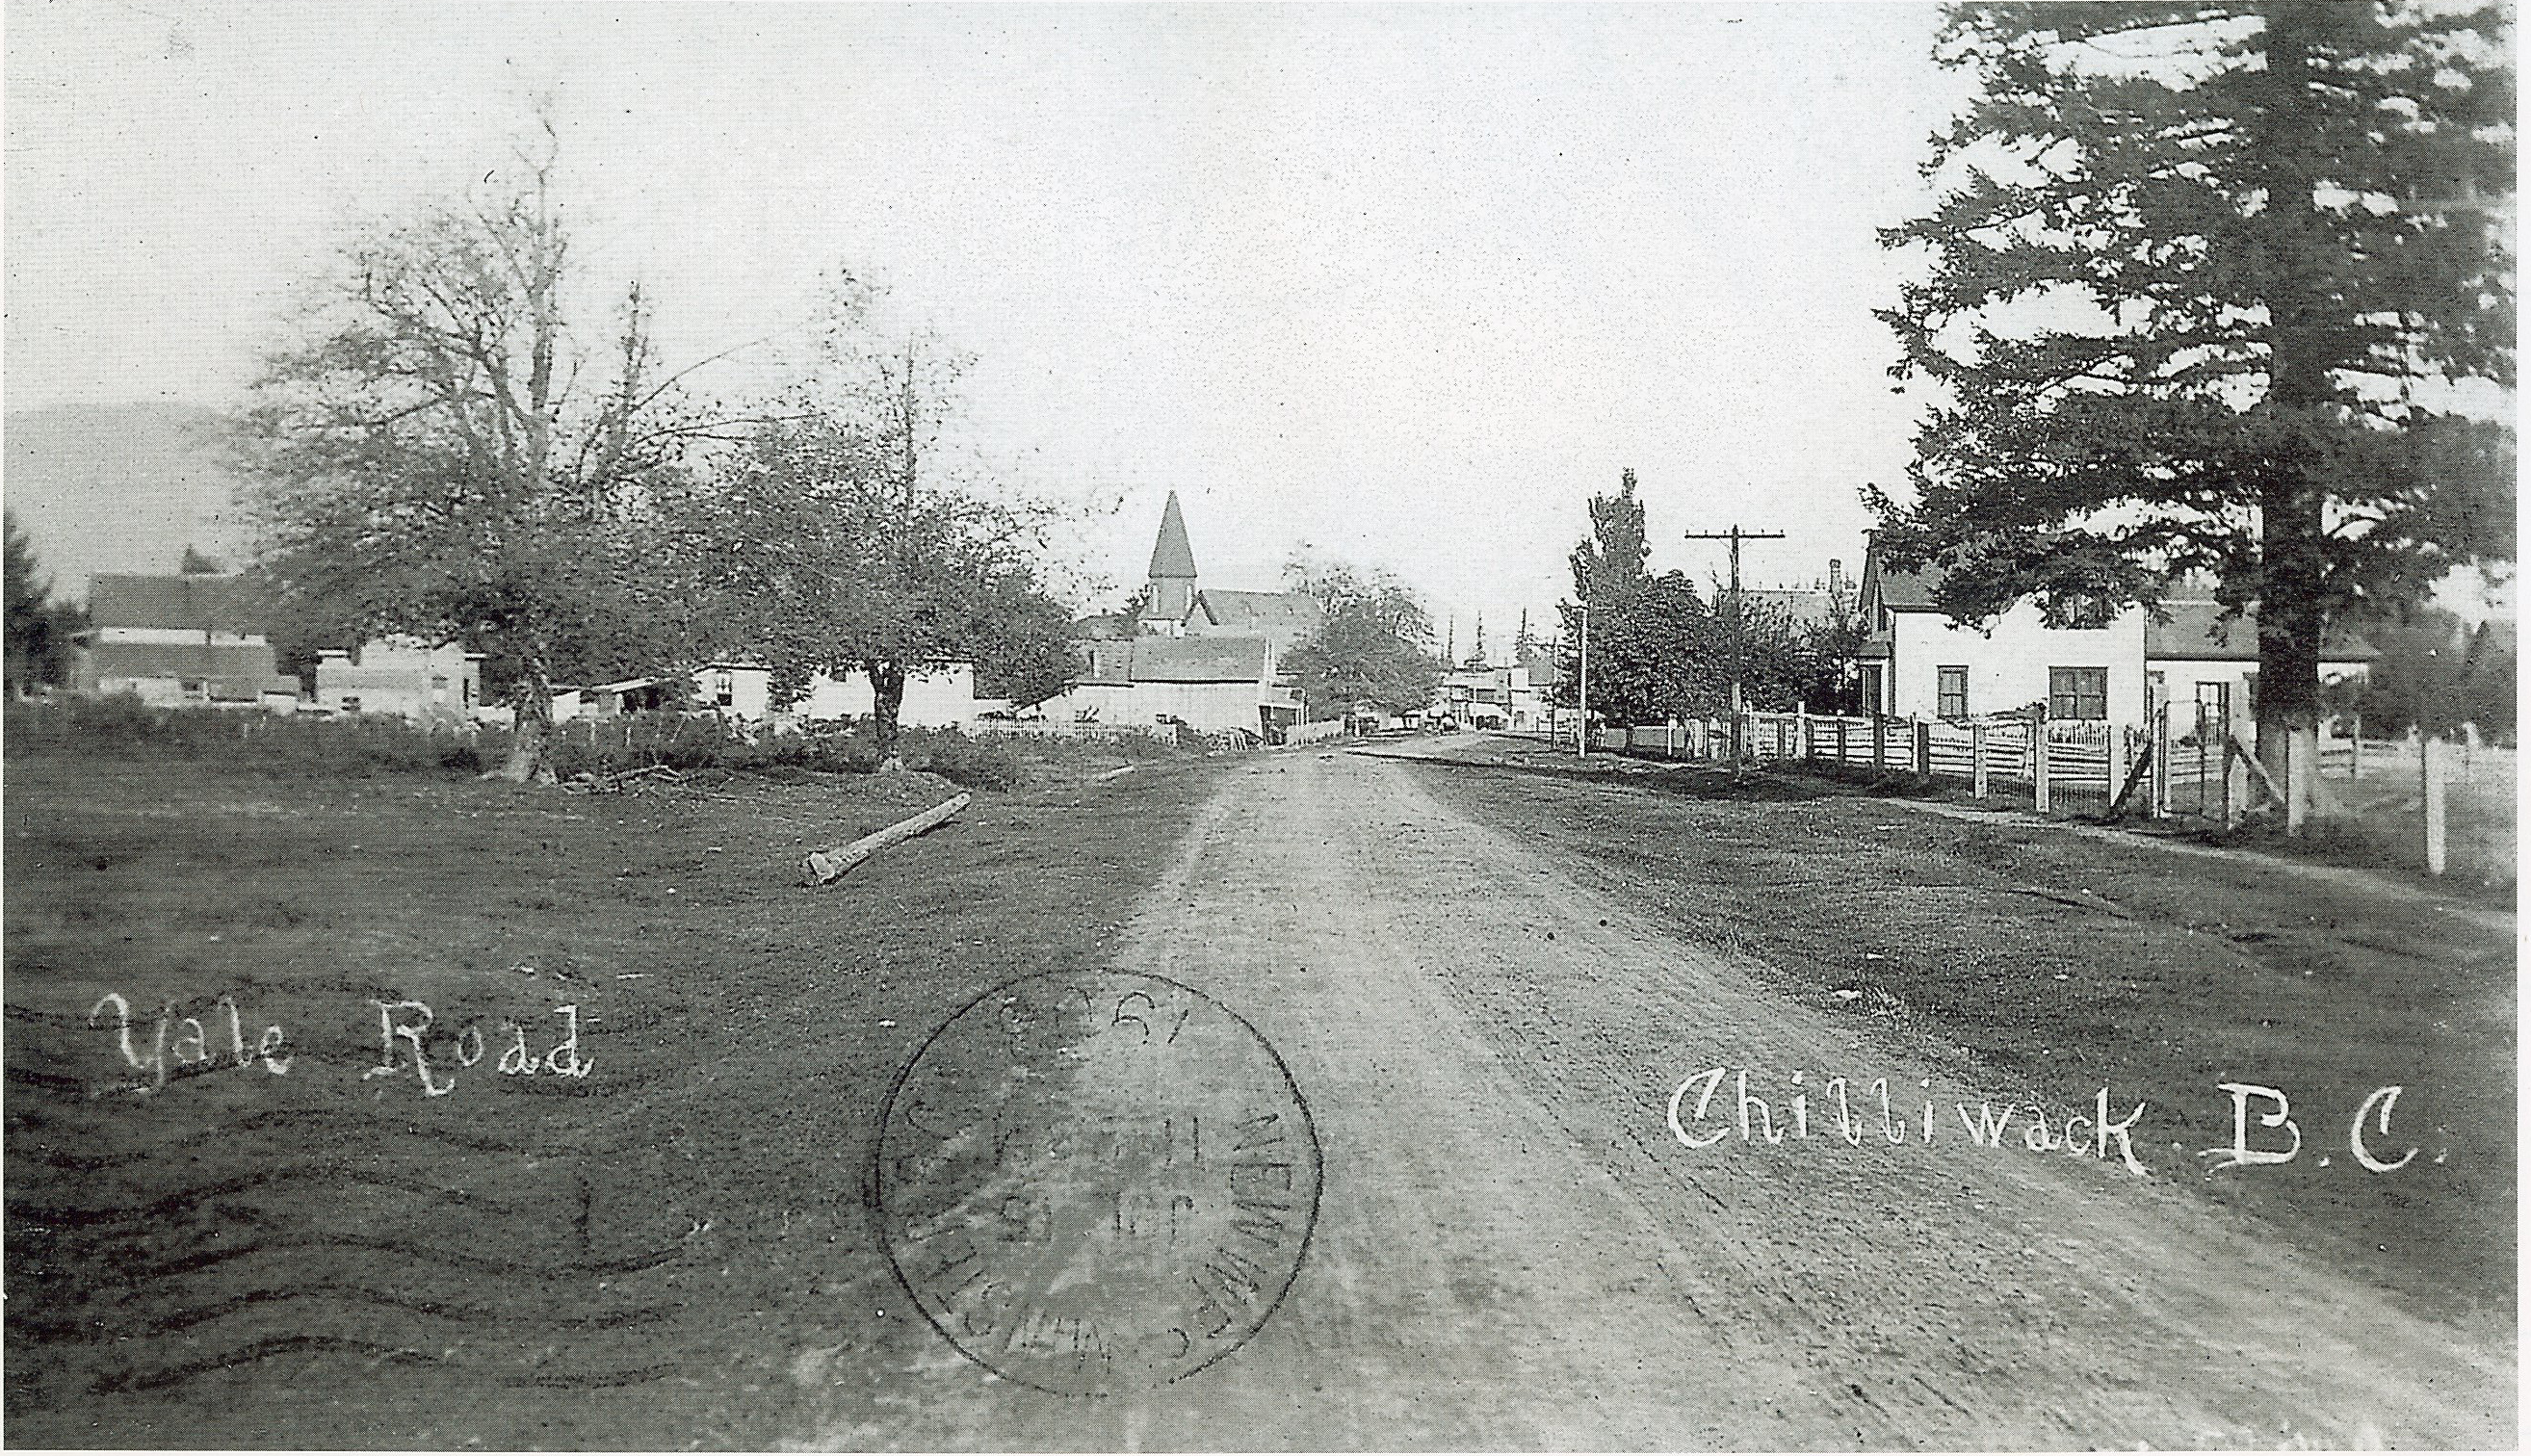 File:Yale Road Chilliwack - 1908 - Site of City Hall.jpgyale city